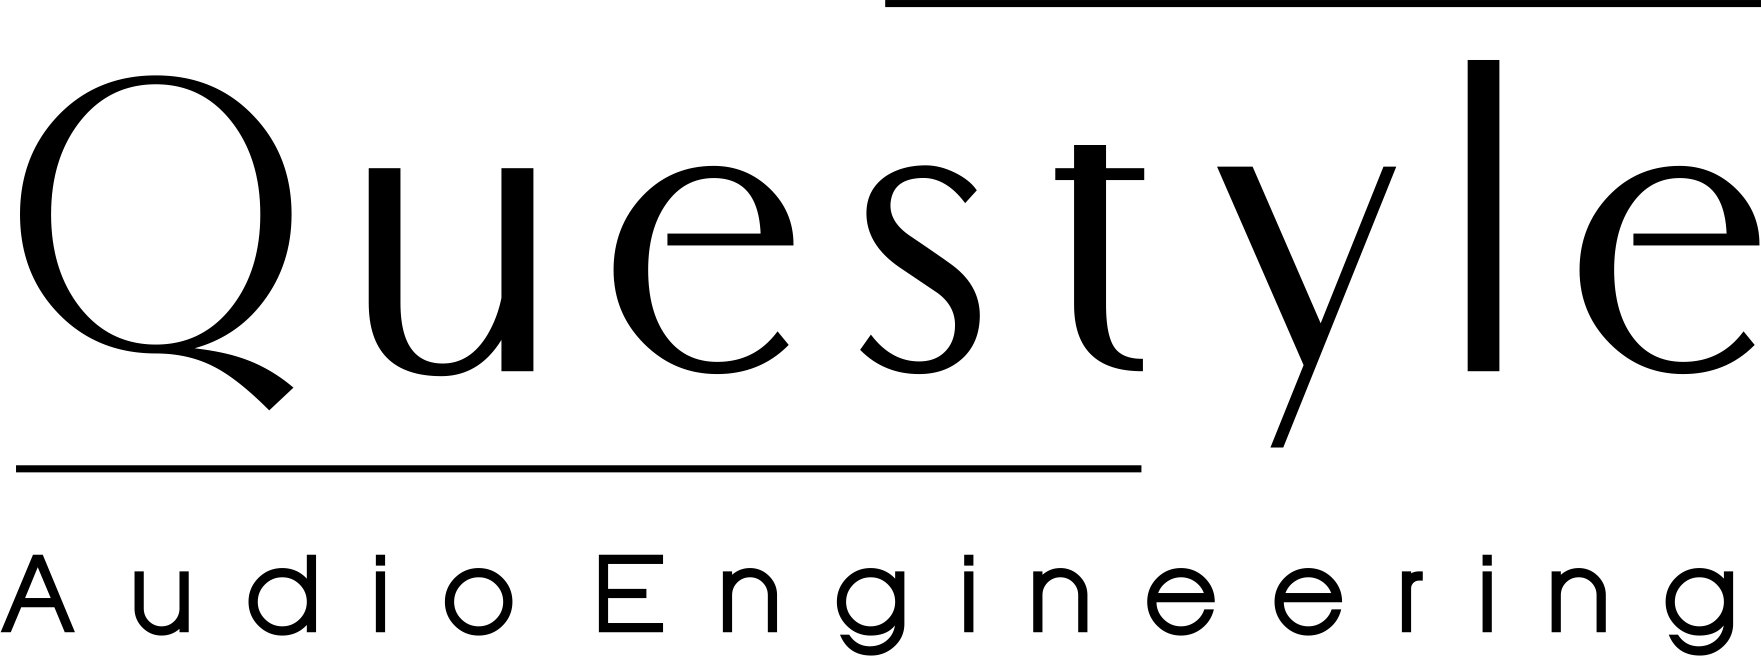 Questyle logo transparent